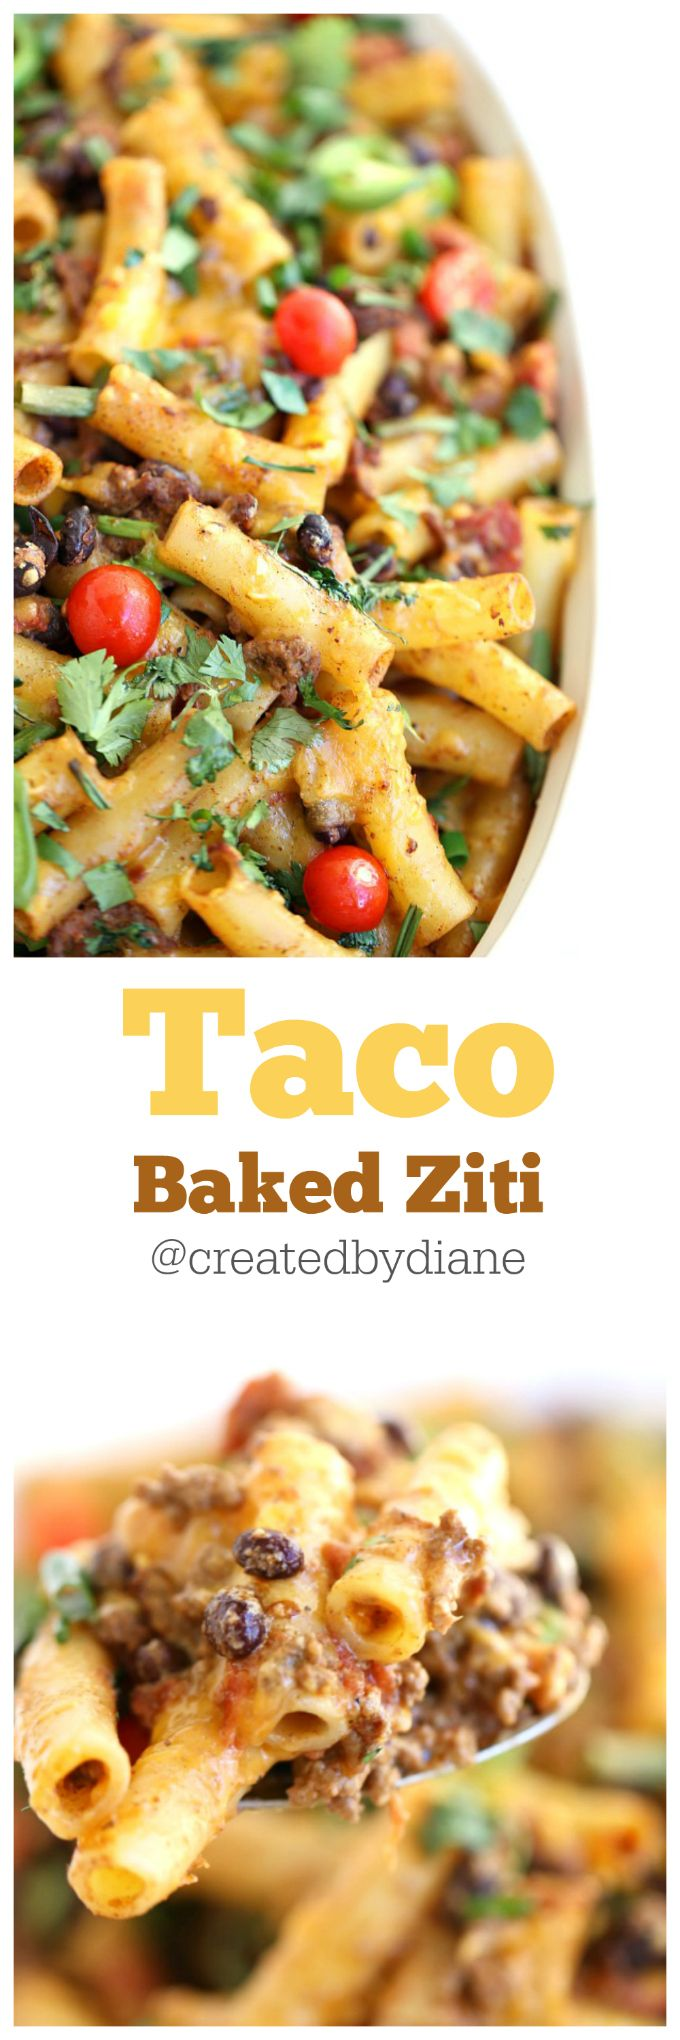 Taco Baked Ziti | Created by Diane